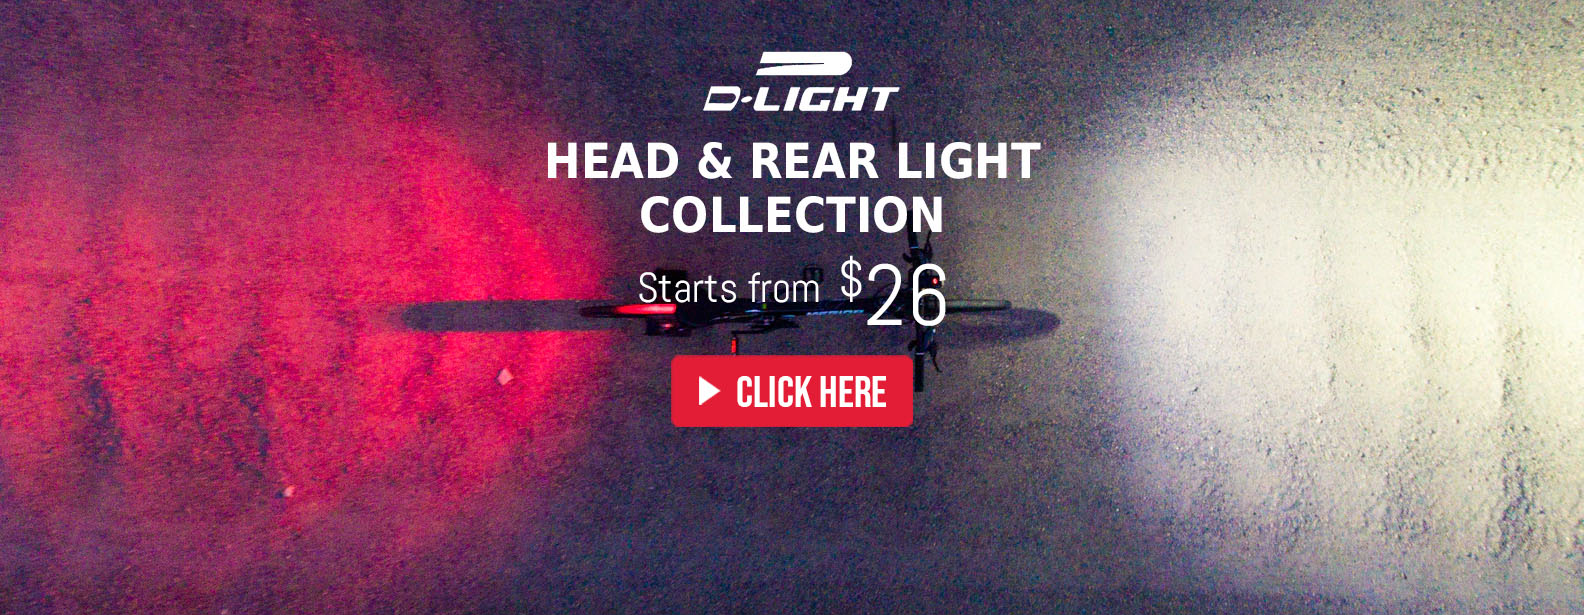 Buy Head & Rear Light Collection